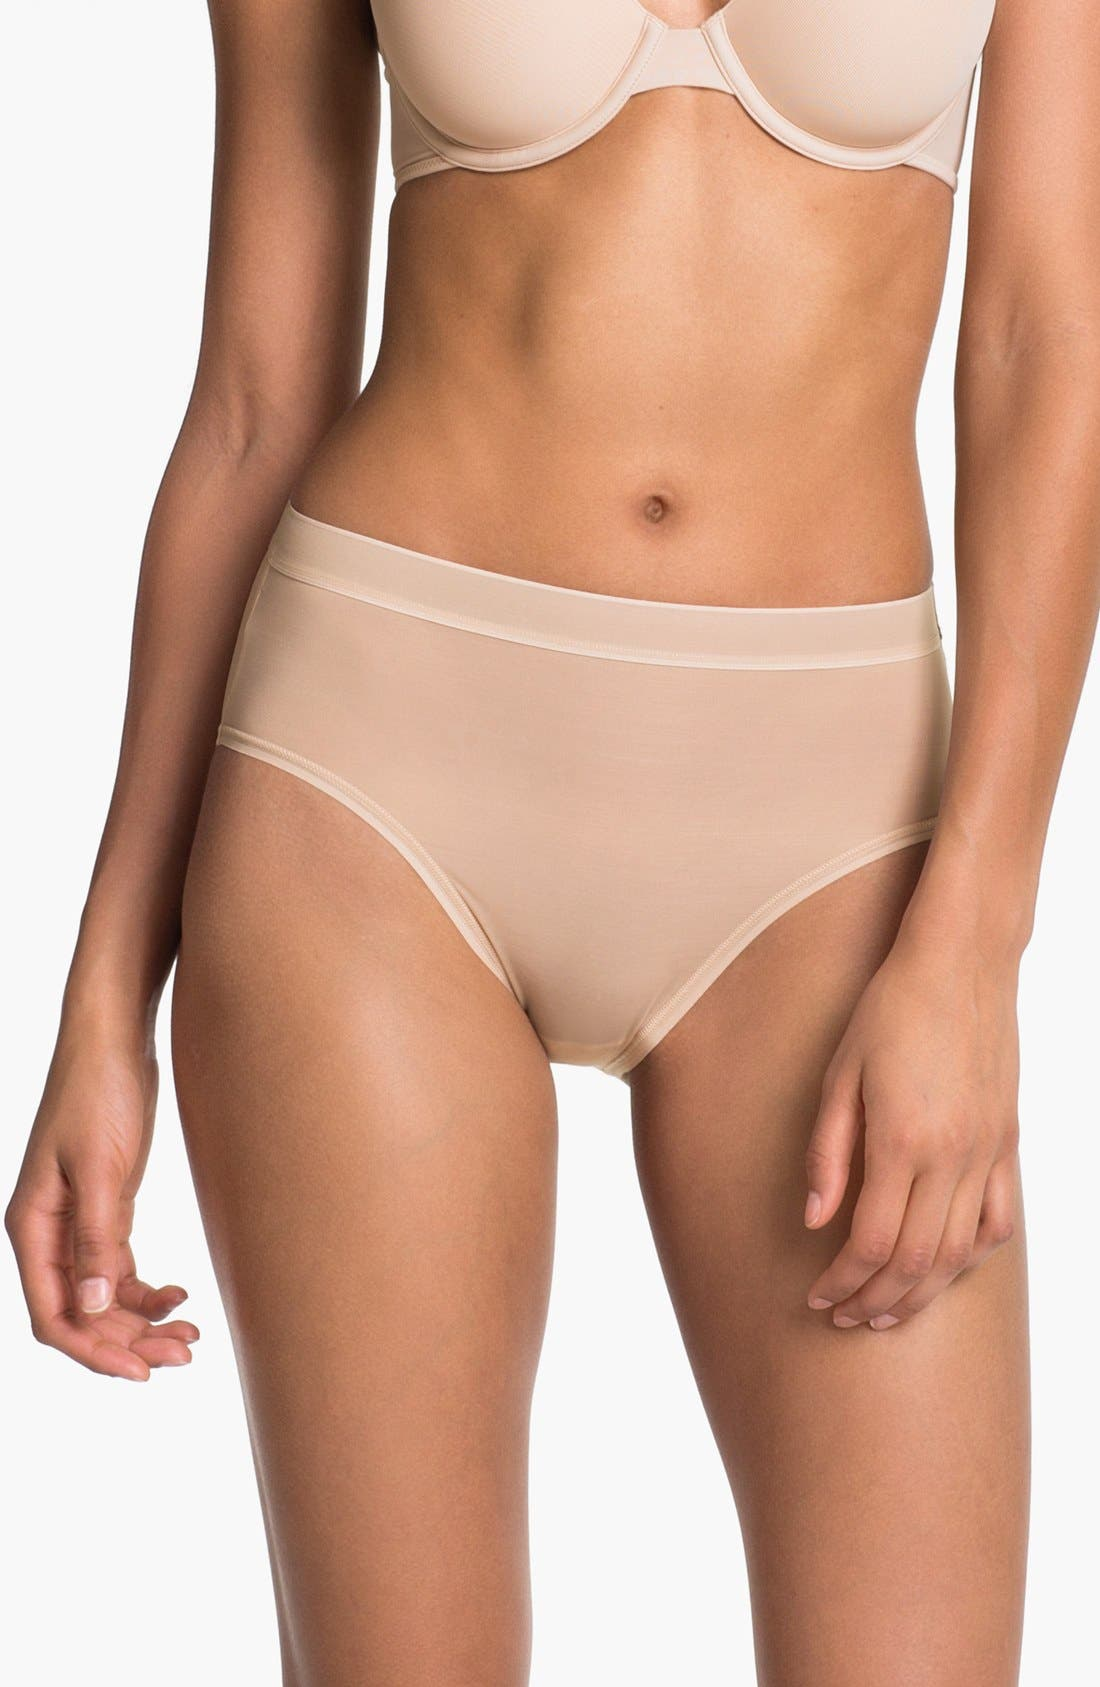 Alternate Image 1 Selected - Wacoal 'Smooth Complexion' High Cut Briefs